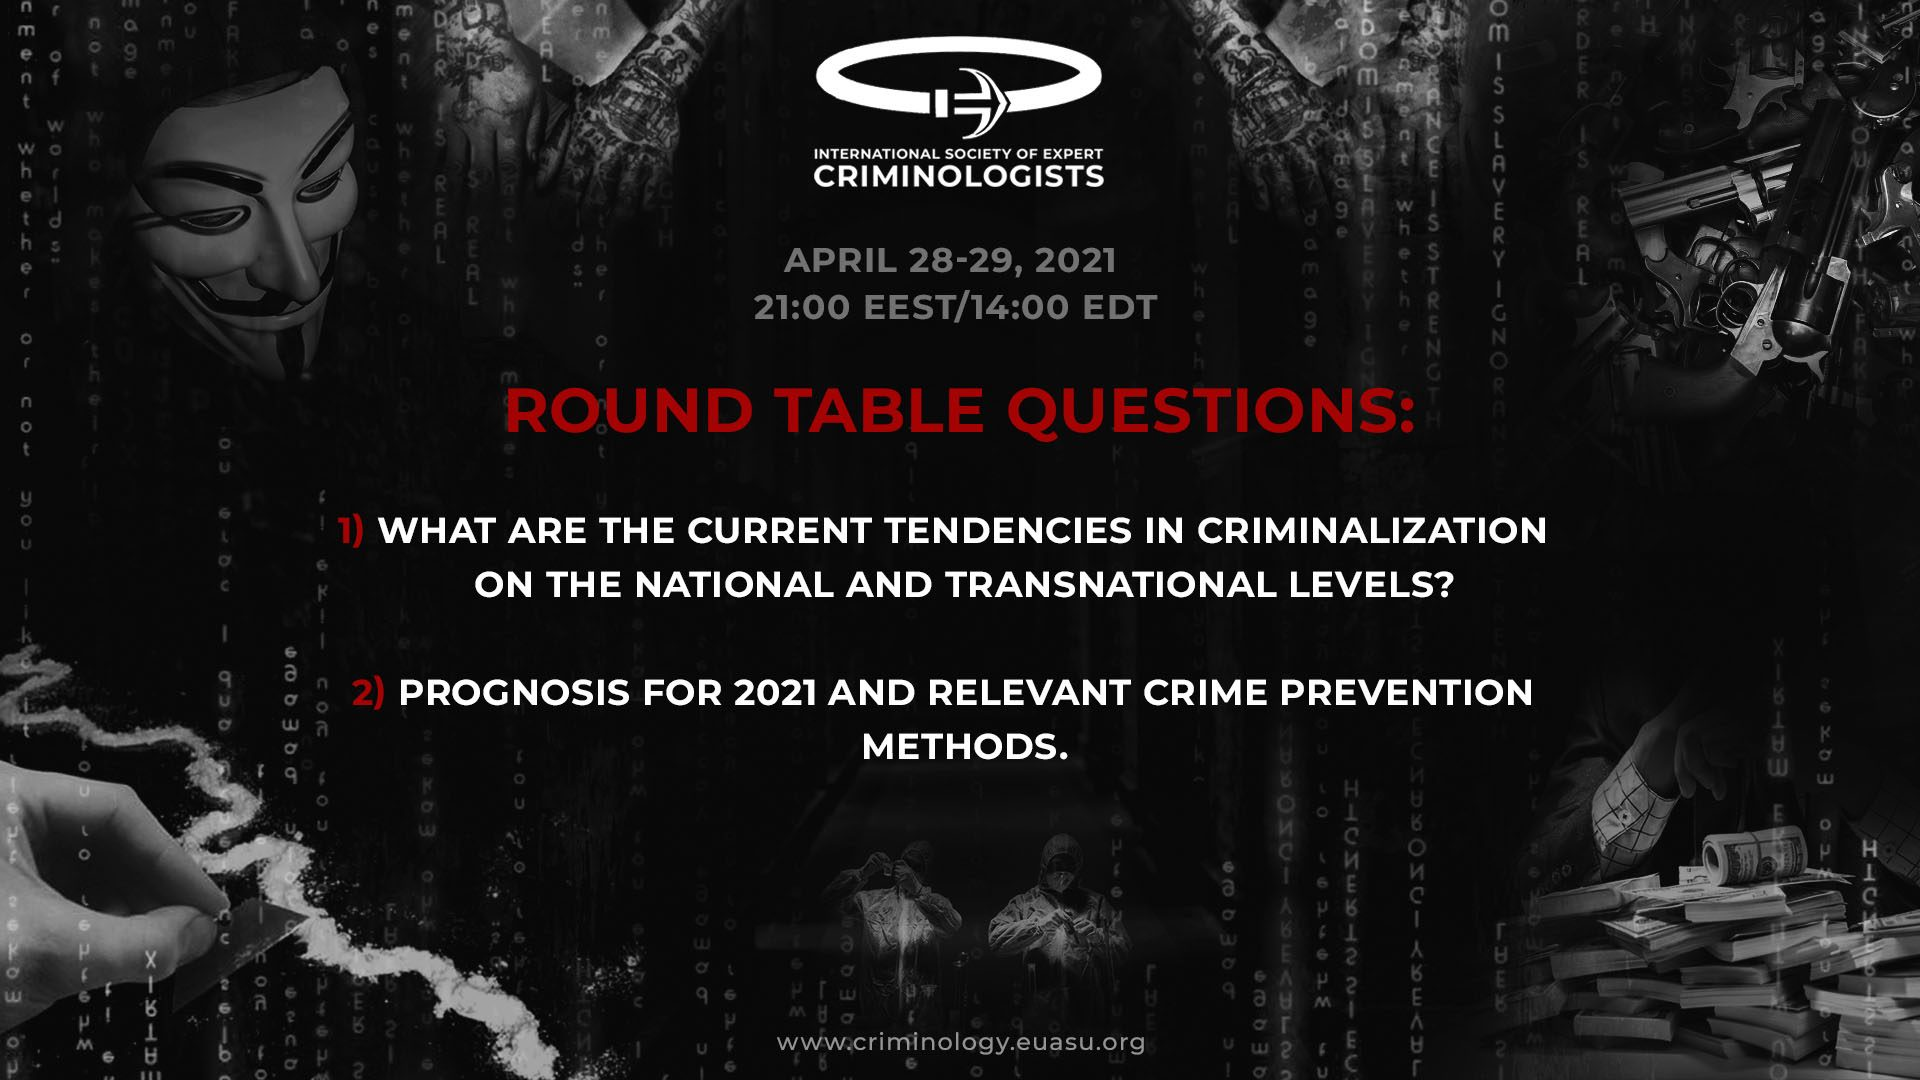 Round Table questions